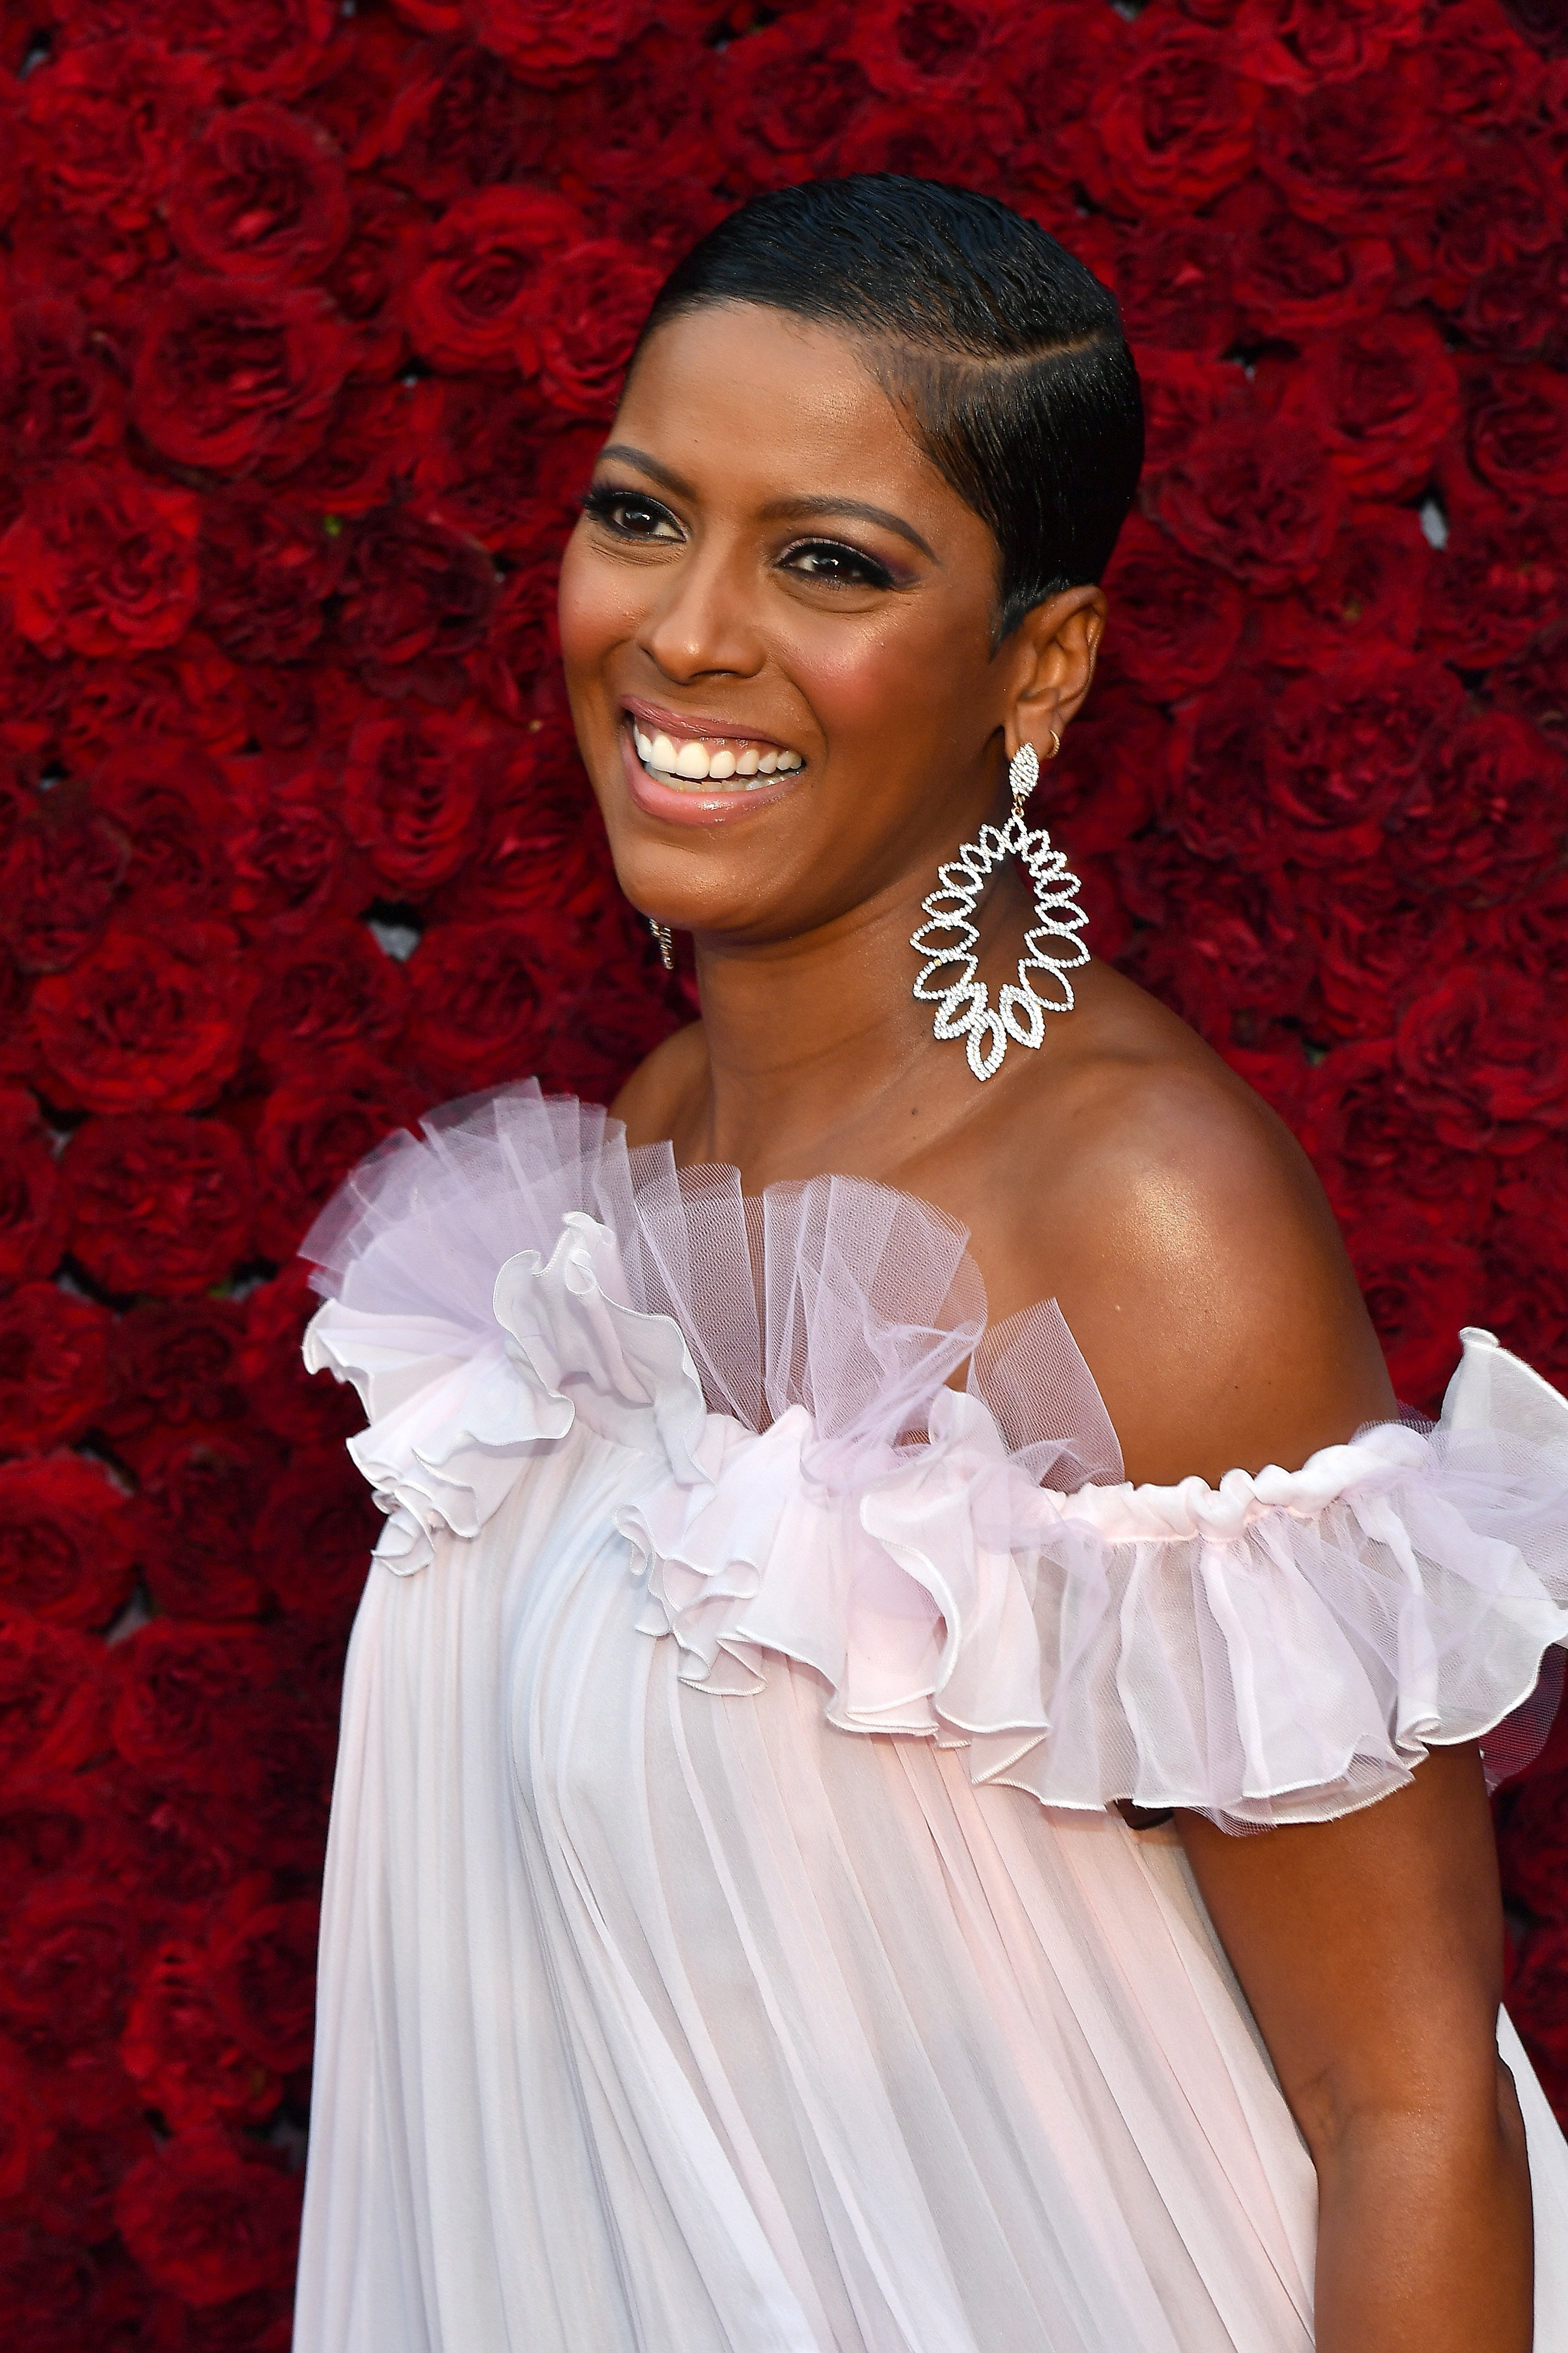 Tamron Hall attends the Grand Opening Gala of Tyler Perry Studios in Atlanta | Source: Getty Images/GlobalImagesUkraine